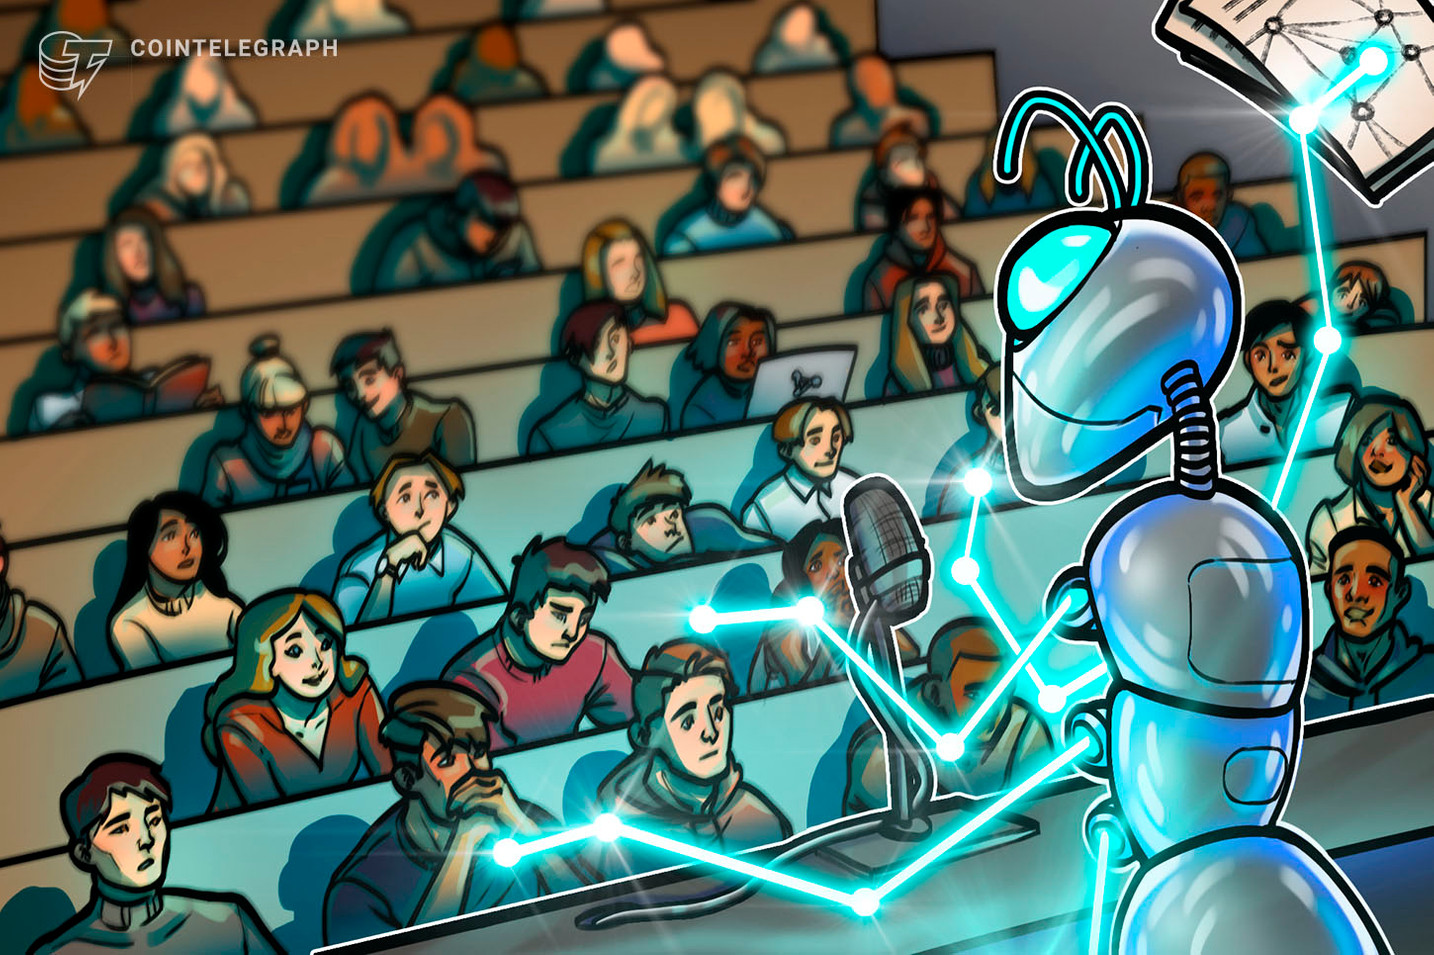 Mass adoption of blockchain tech is possible, and education is the key